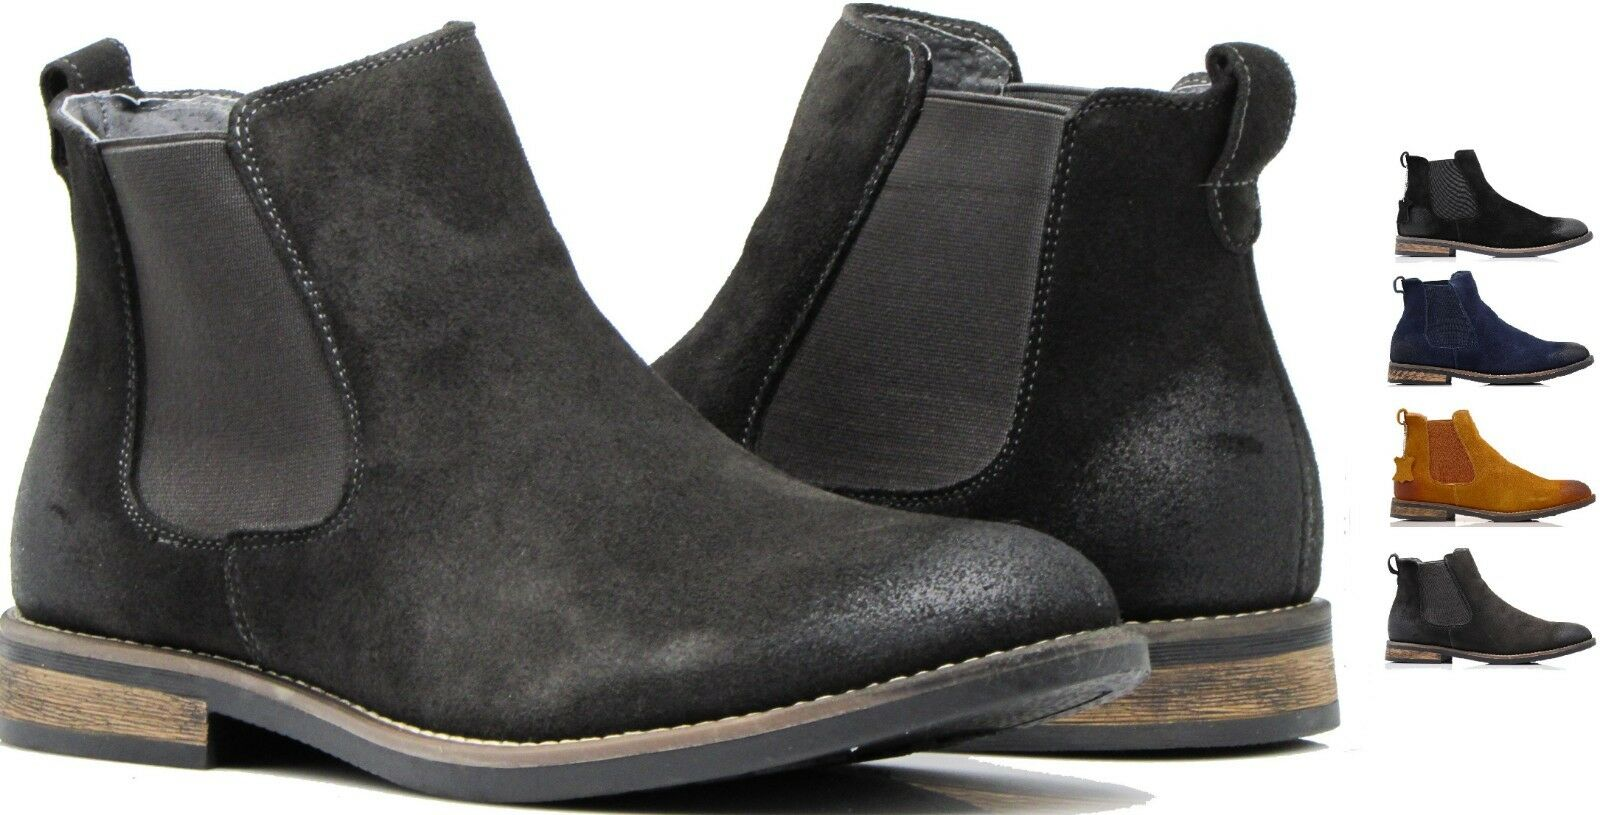 MEN WALLACE CHELSEA ANKLE BOOTS DESERT MARTIN GENUINE LEATHER CHUKKA BOOTS BLG